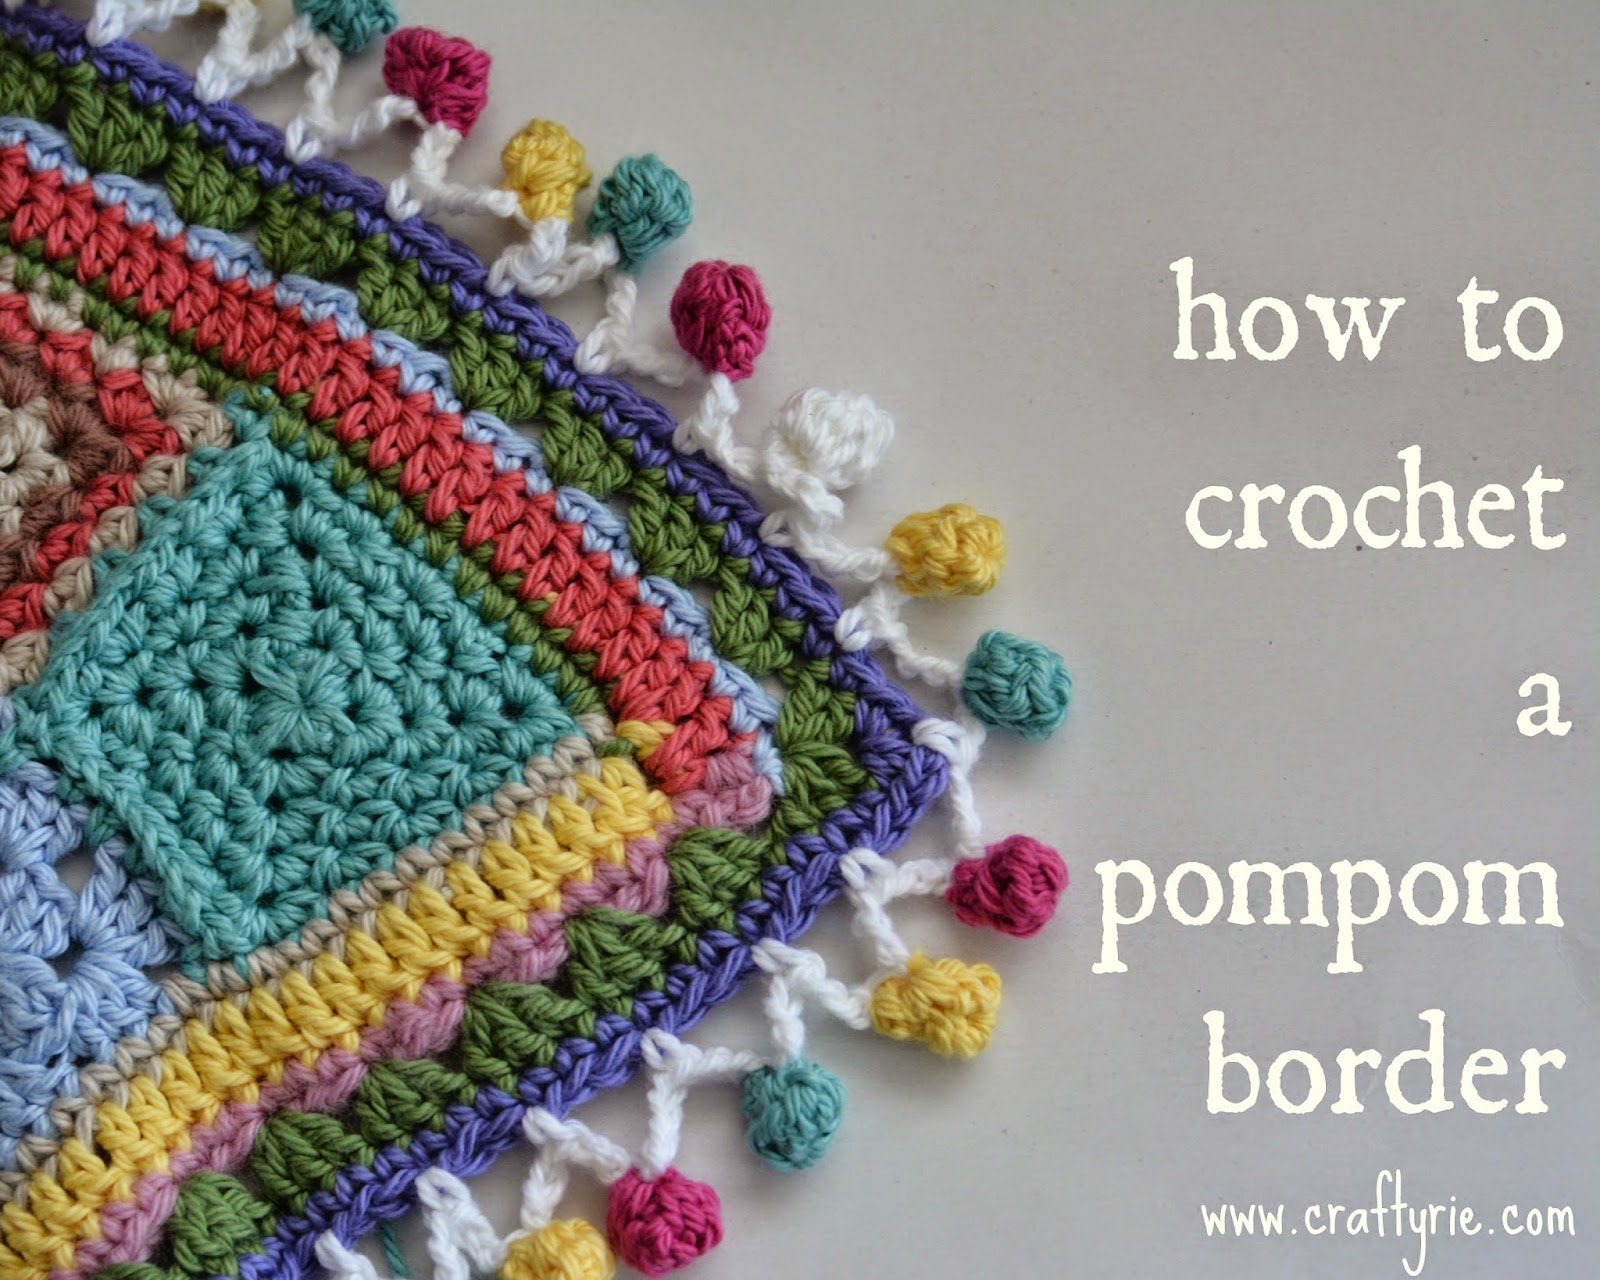 http://www.craftyrie.com/2015/01/make-yourself-pompom-border.html